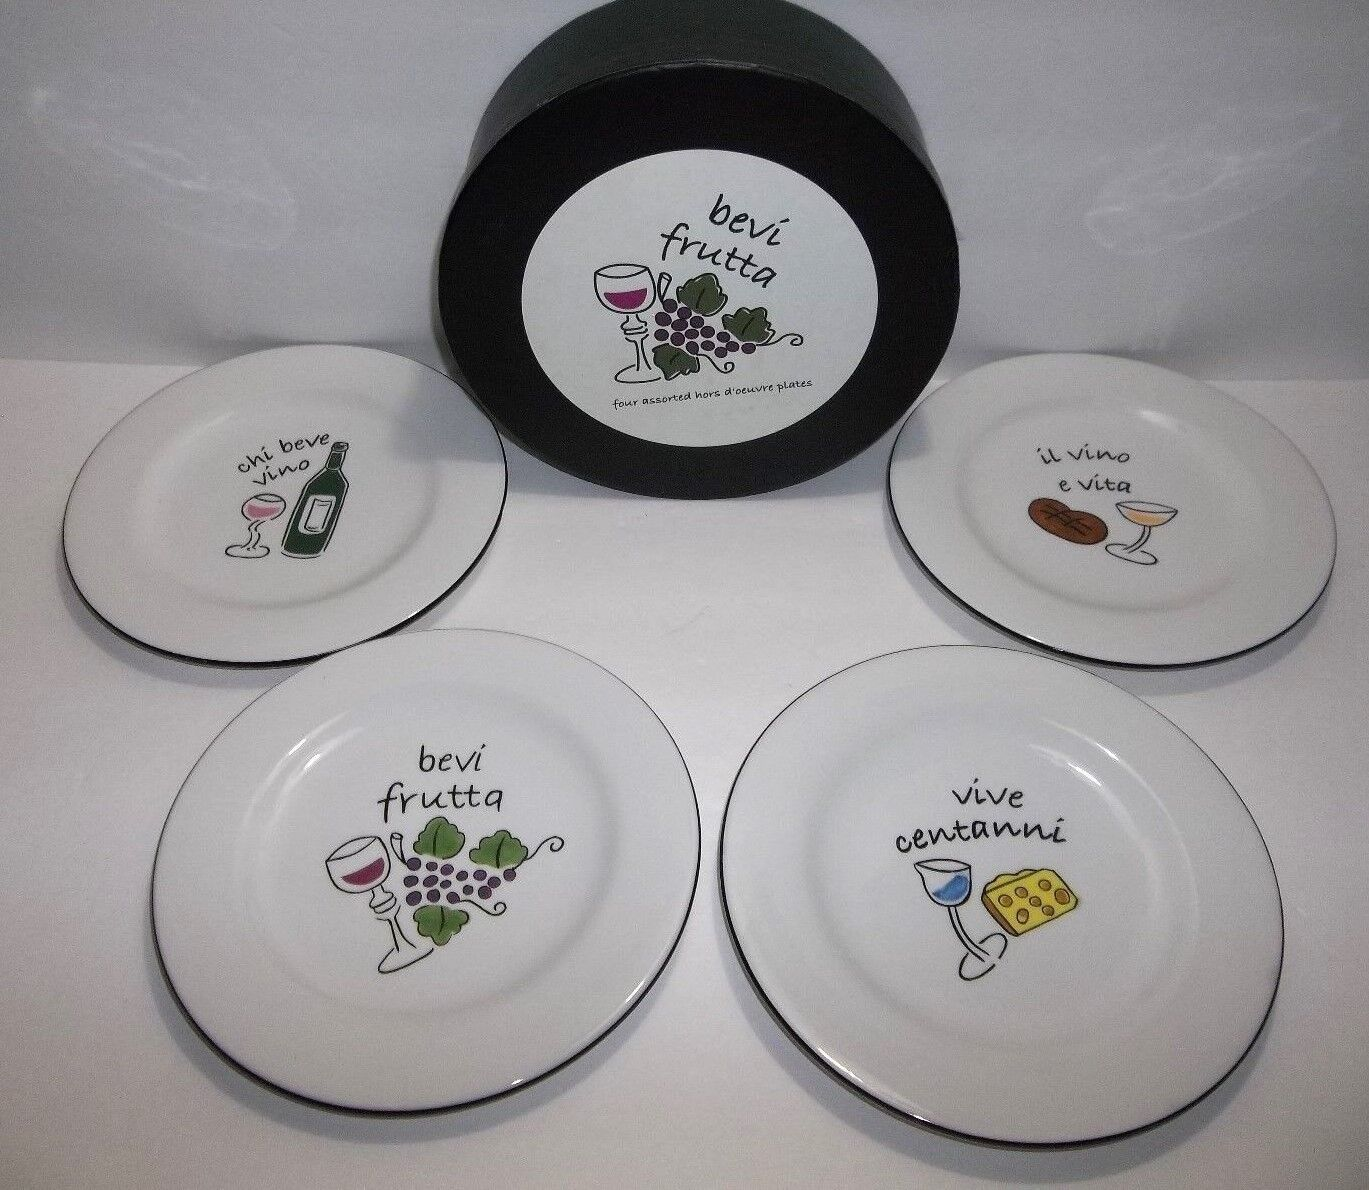 Bevi Frutta Hors d'oeuvre Wine CHEESE Appetizer PLATES Set Of 4 MIB